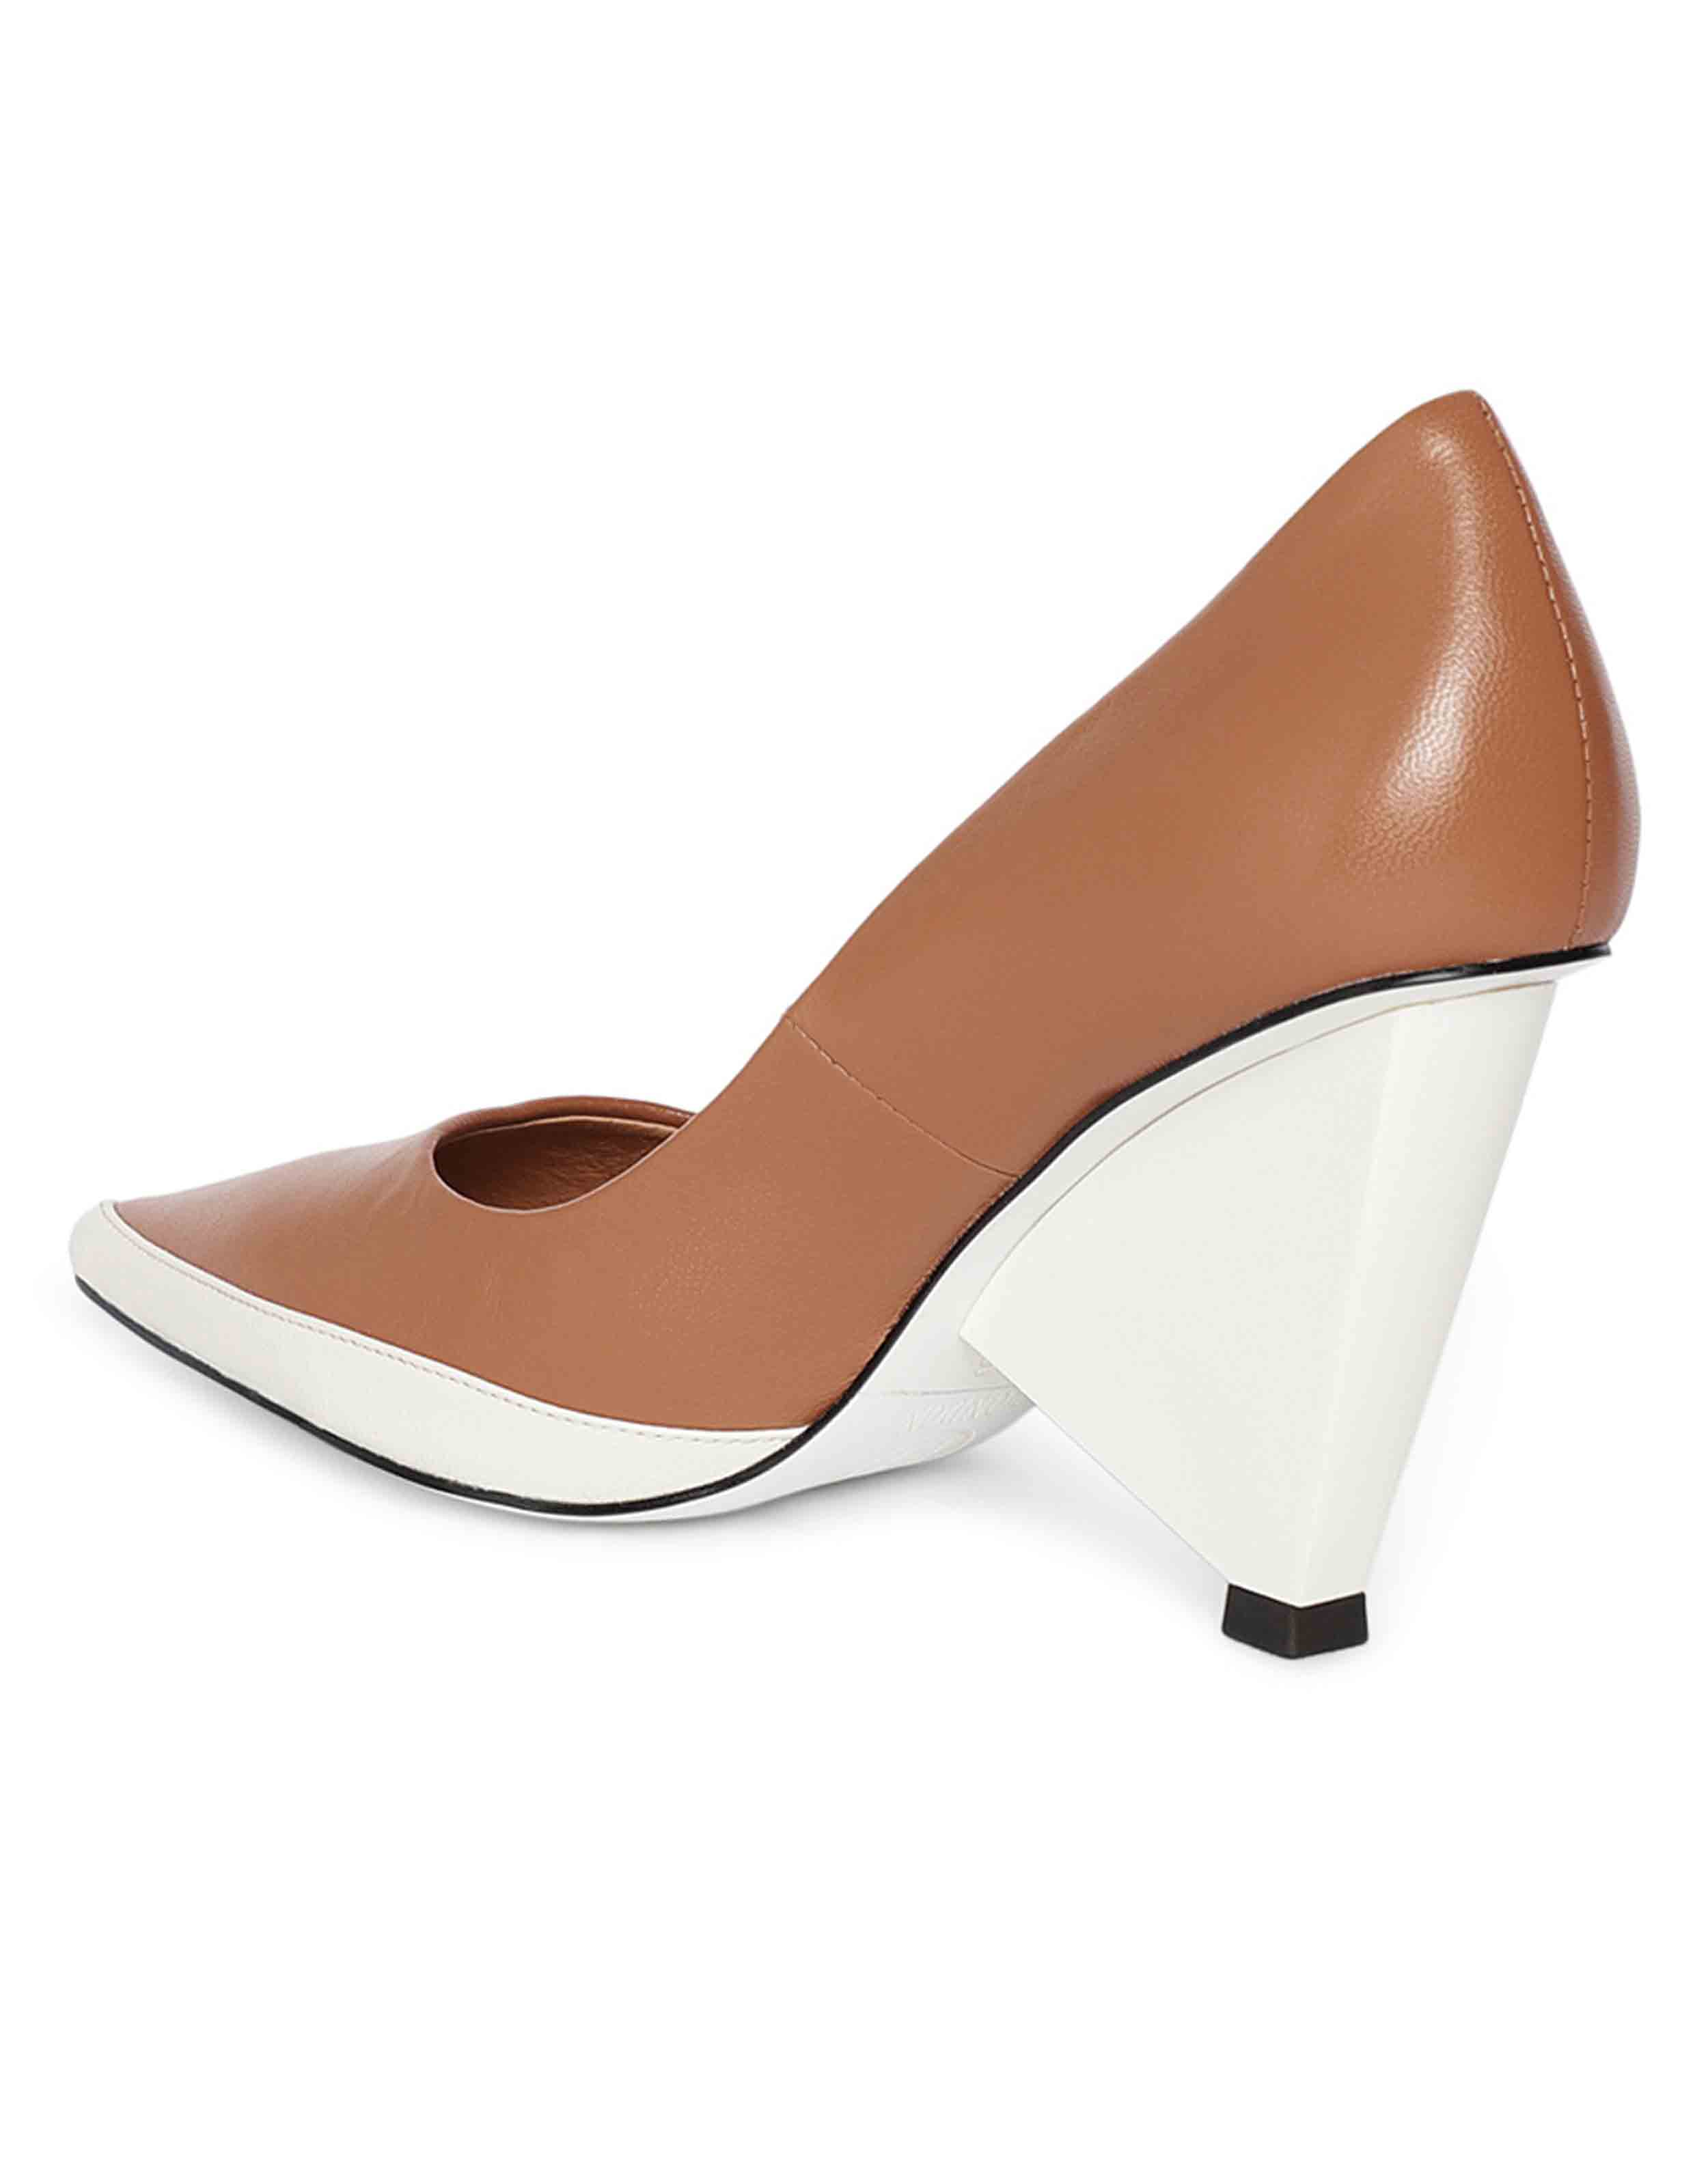 Triangular Pumps3